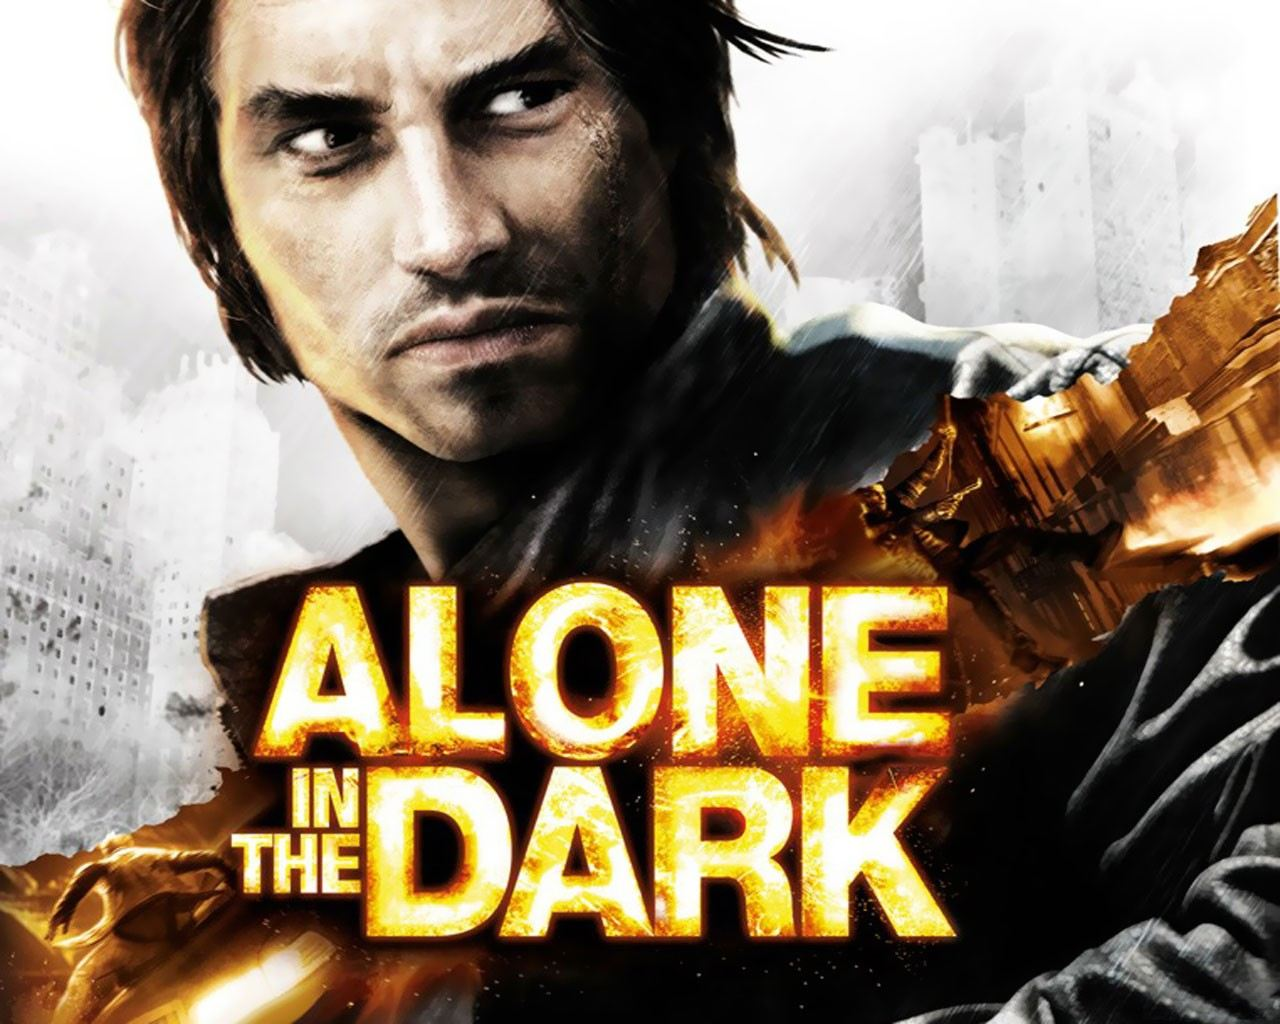 Teamxpg trainer 4 alone in the dark xpg gaming community for Alone in the dark